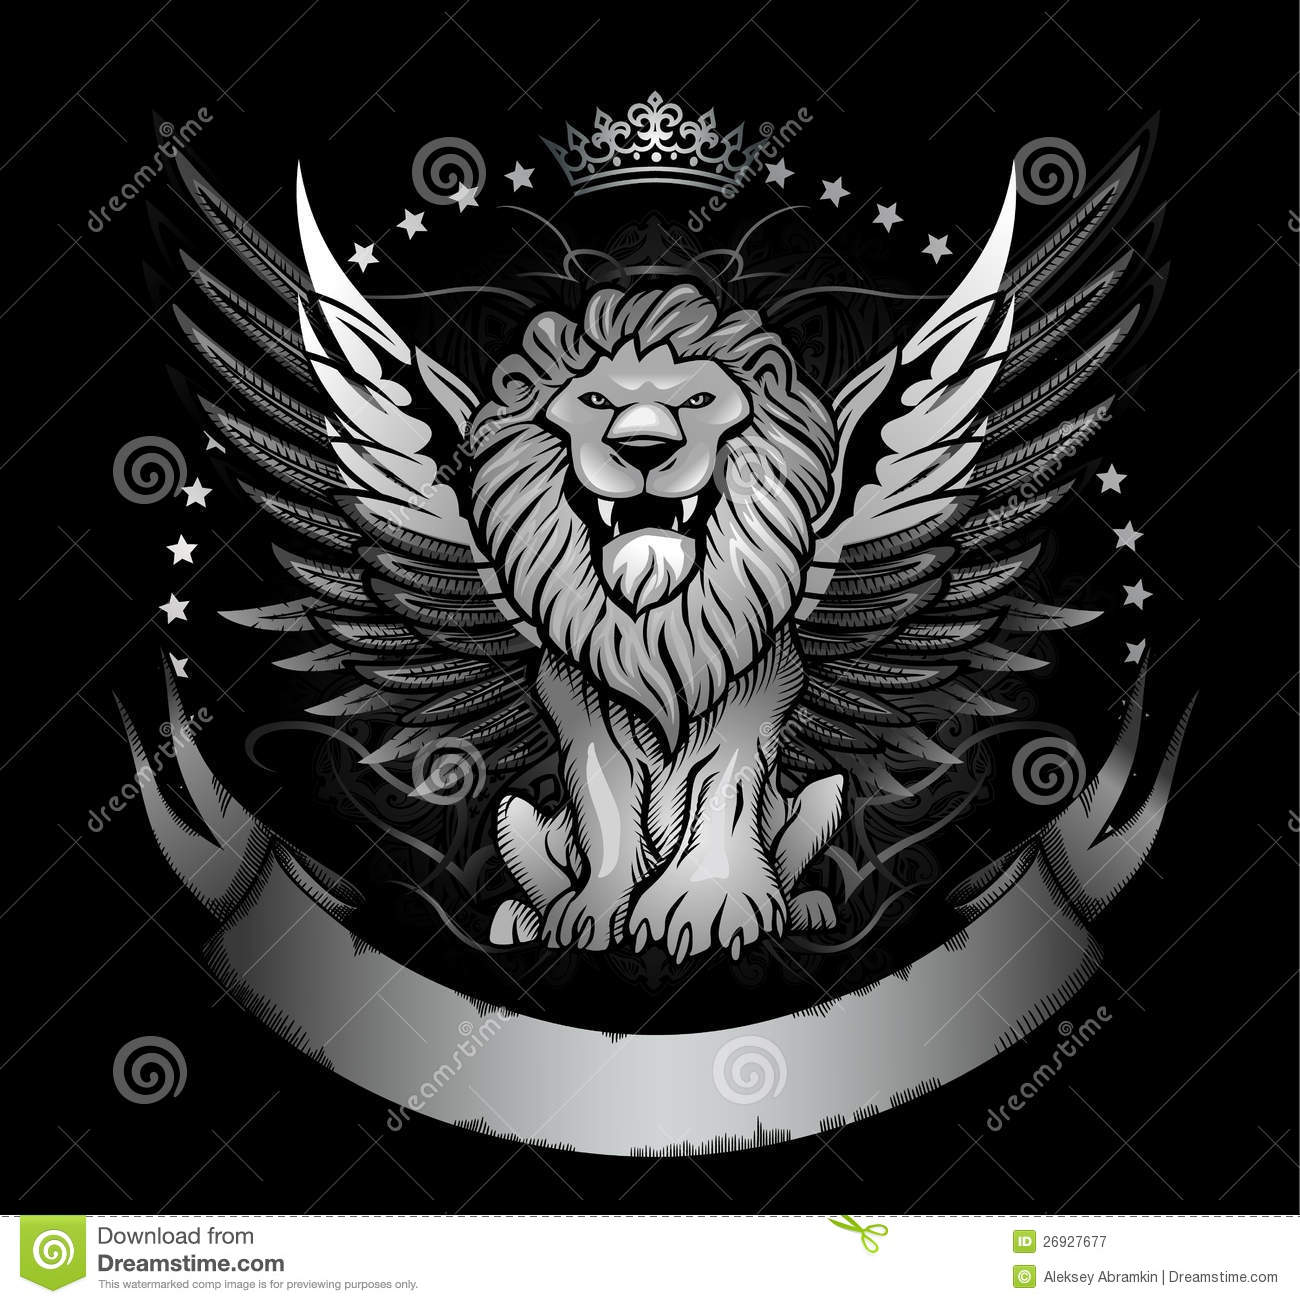 Lion With Crown Wallpaper Lion With Crown Tattoo Design: Winged Lion Badge Or Crest Royalty Free Stock Photography